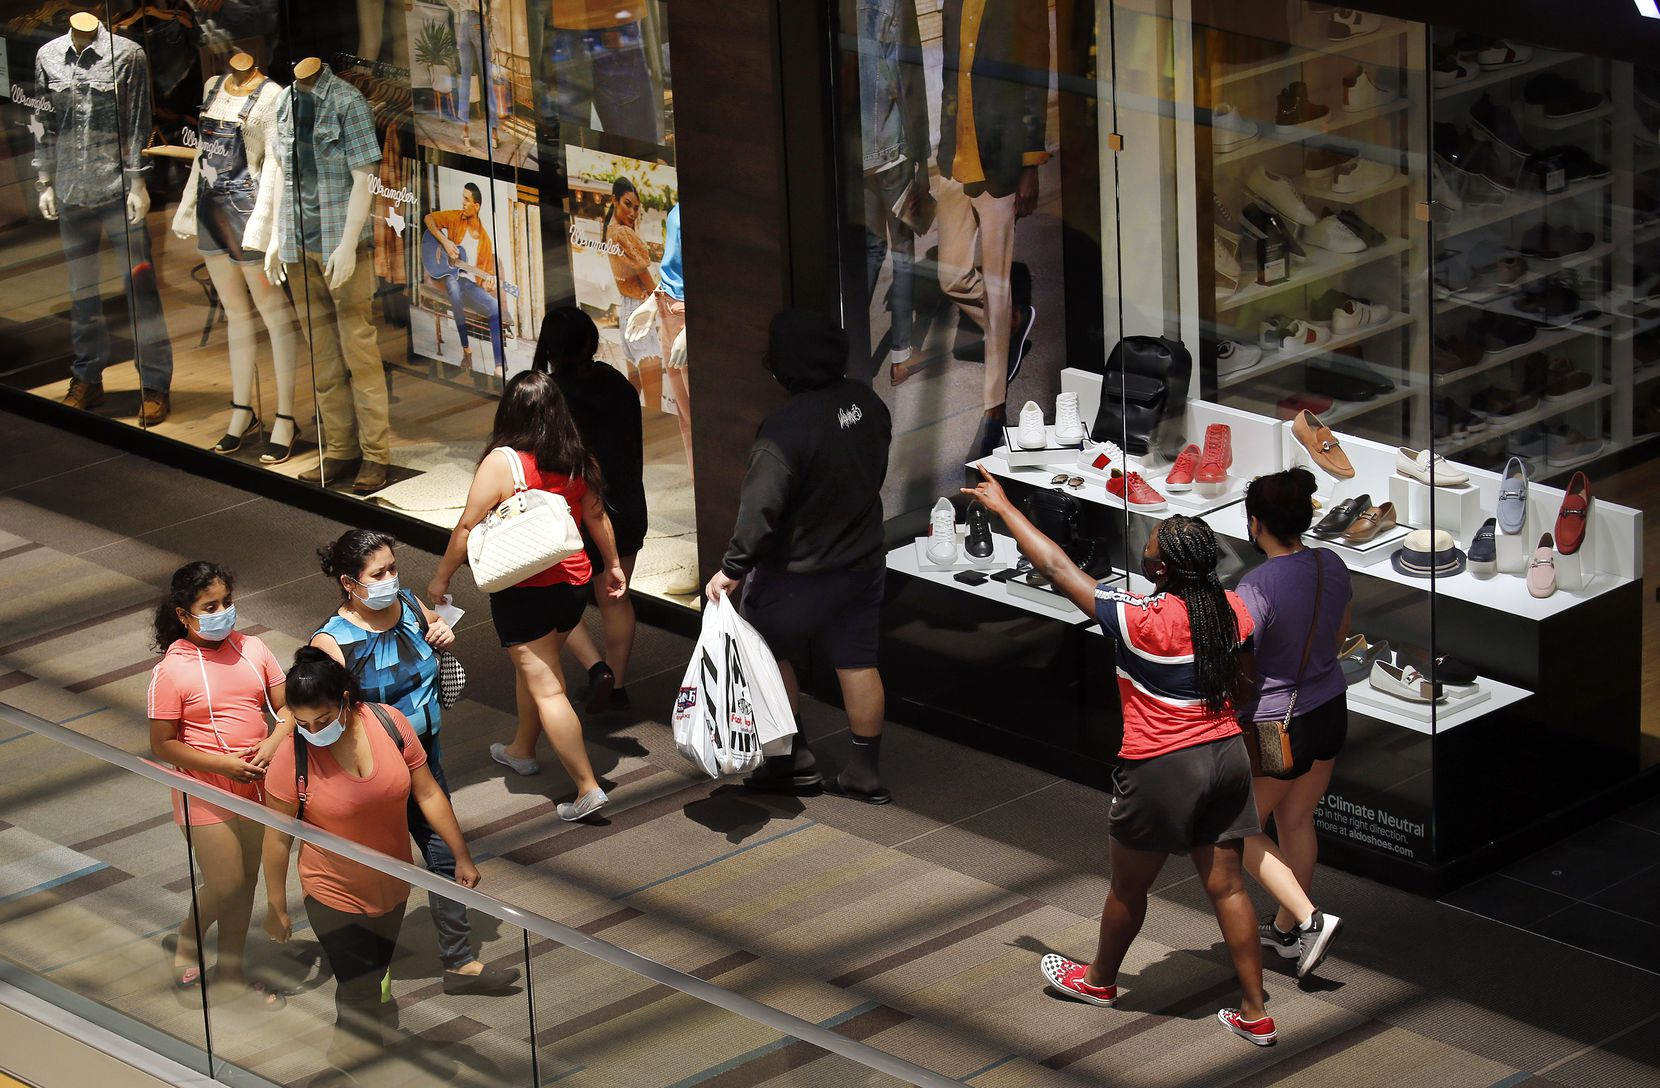 Shoppers return to the Galleria Dallas, Friday, June 5, 2020. The mall was closed this week in the wake of looting in several cities that stemmed from the protests over George Floyd's in-police custody death.